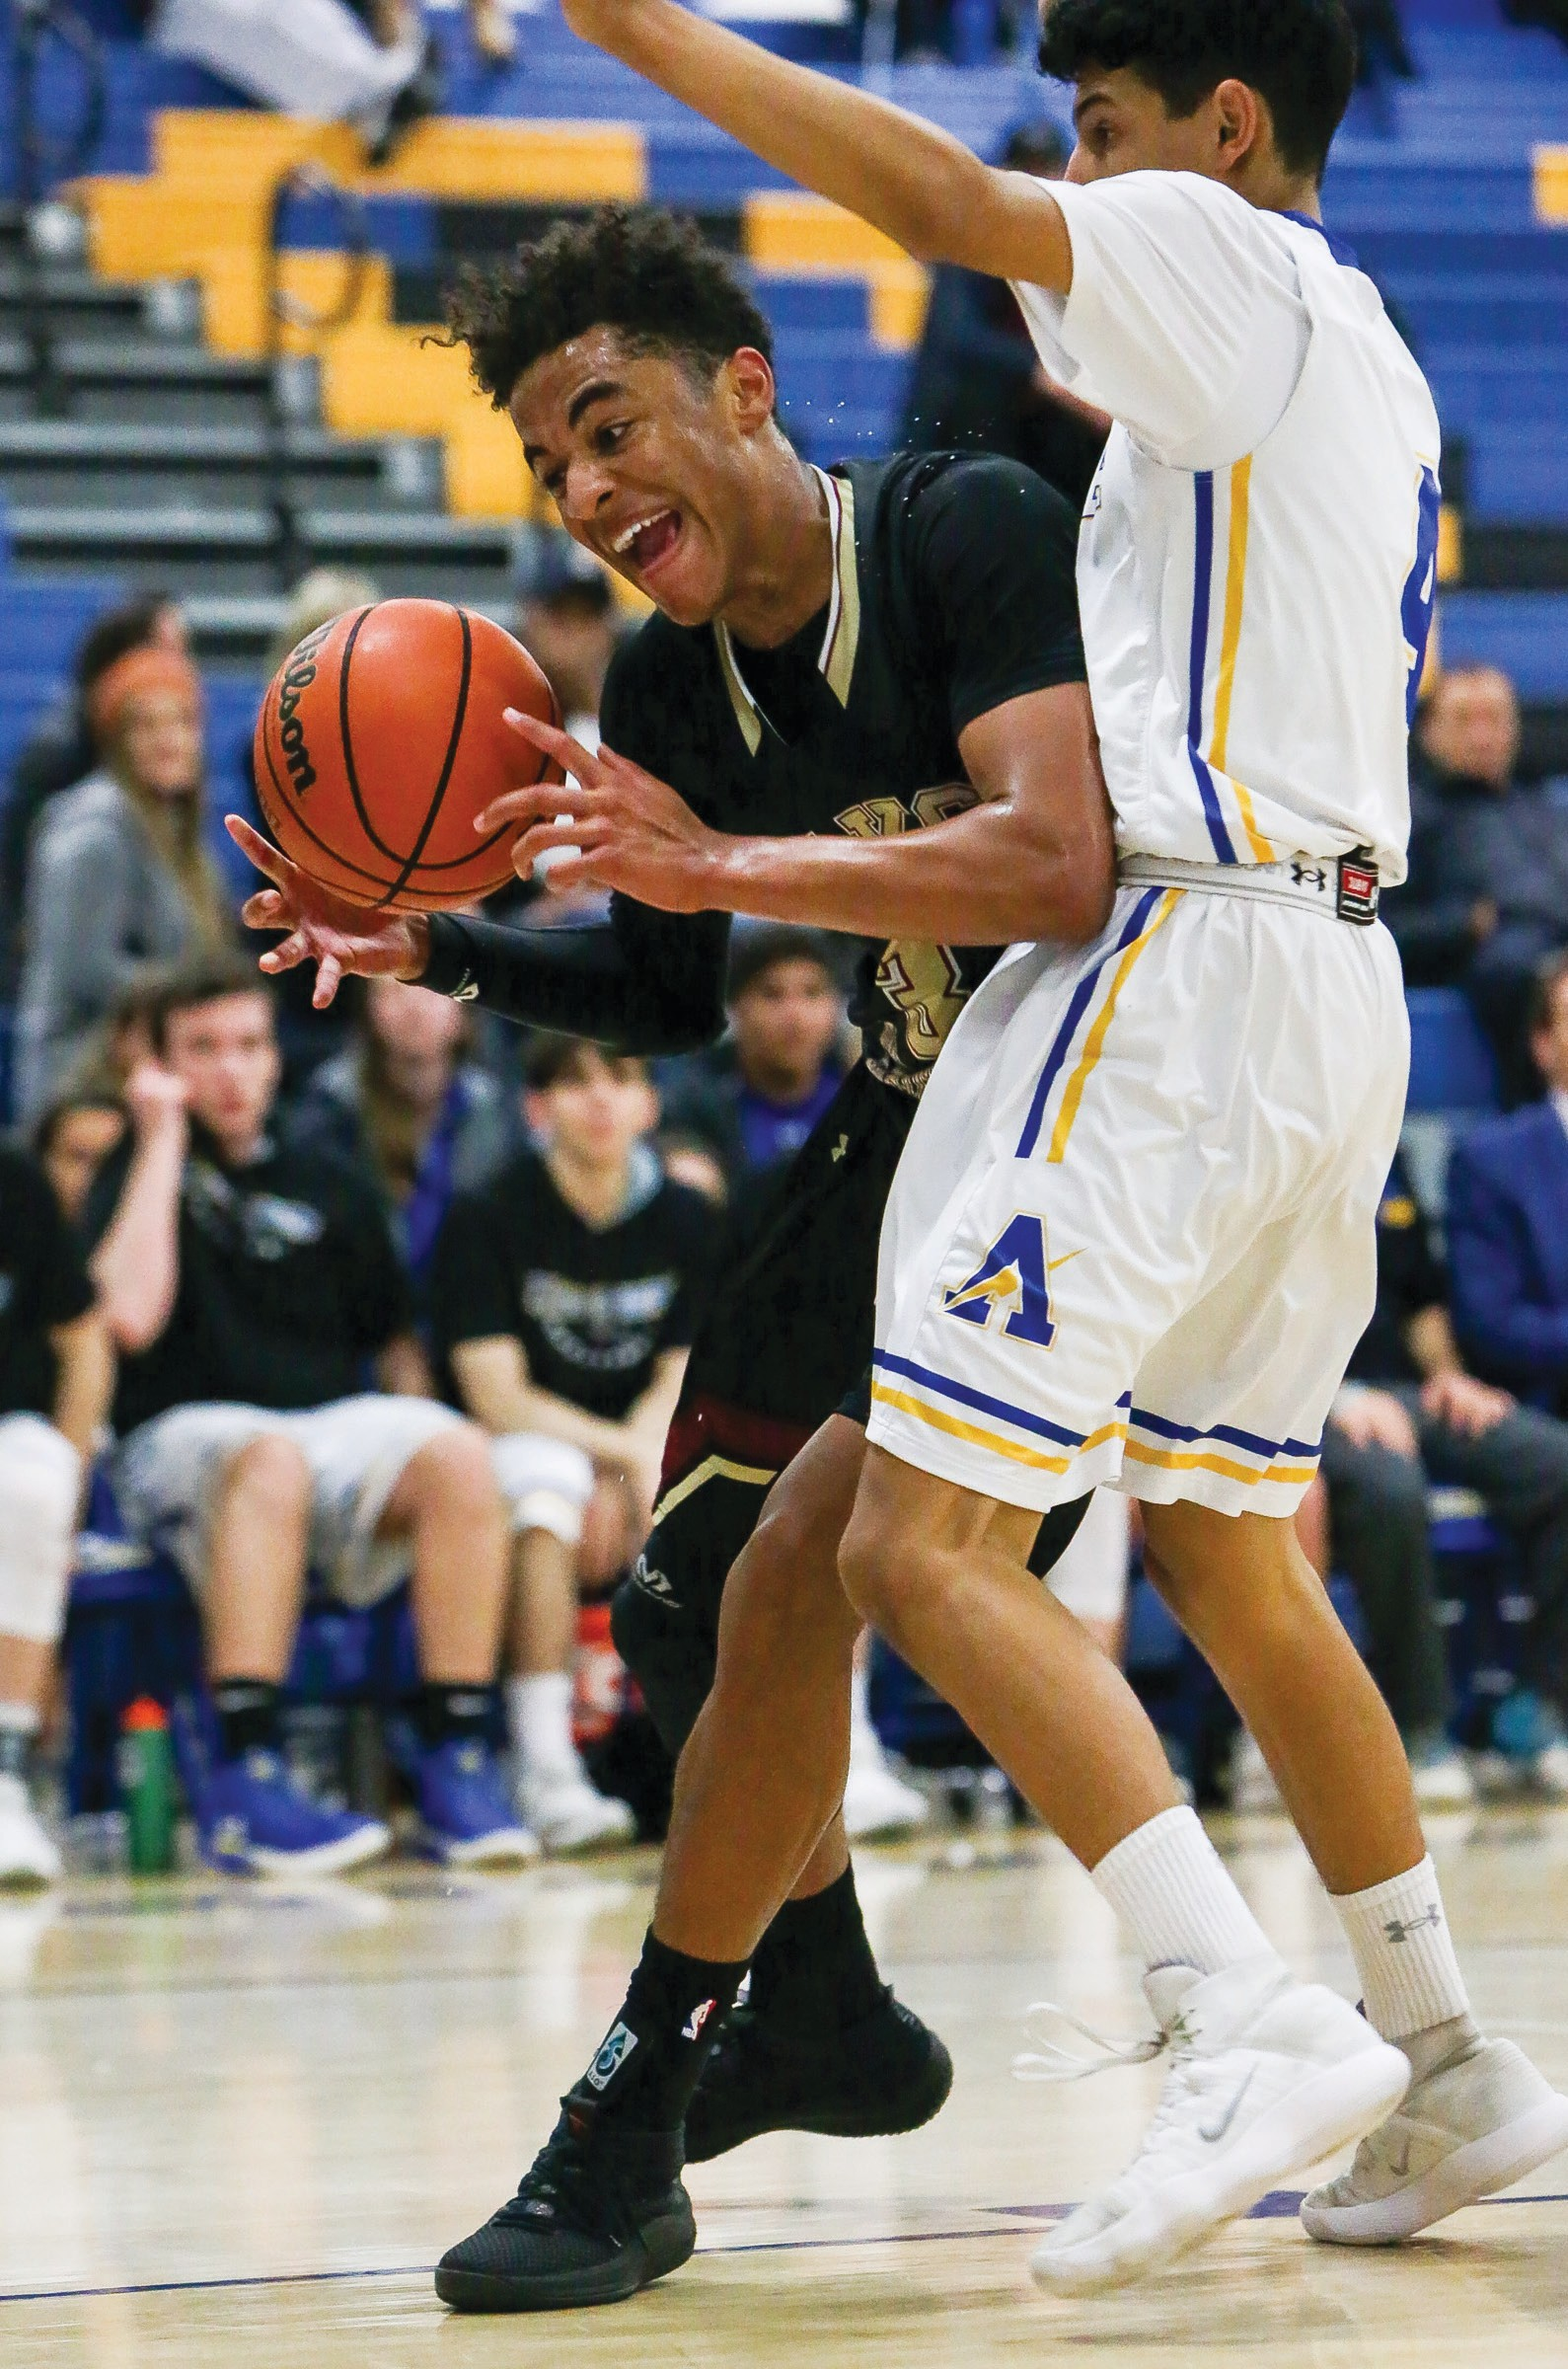 FUTURE MVP—Oaks Christian High senior guard Jordan Jones, left, scored 20 points in a 65-60 win against Agoura on Jan. 8 on the road. Photos by BOBBY CURTIS/Acorn Newspapers